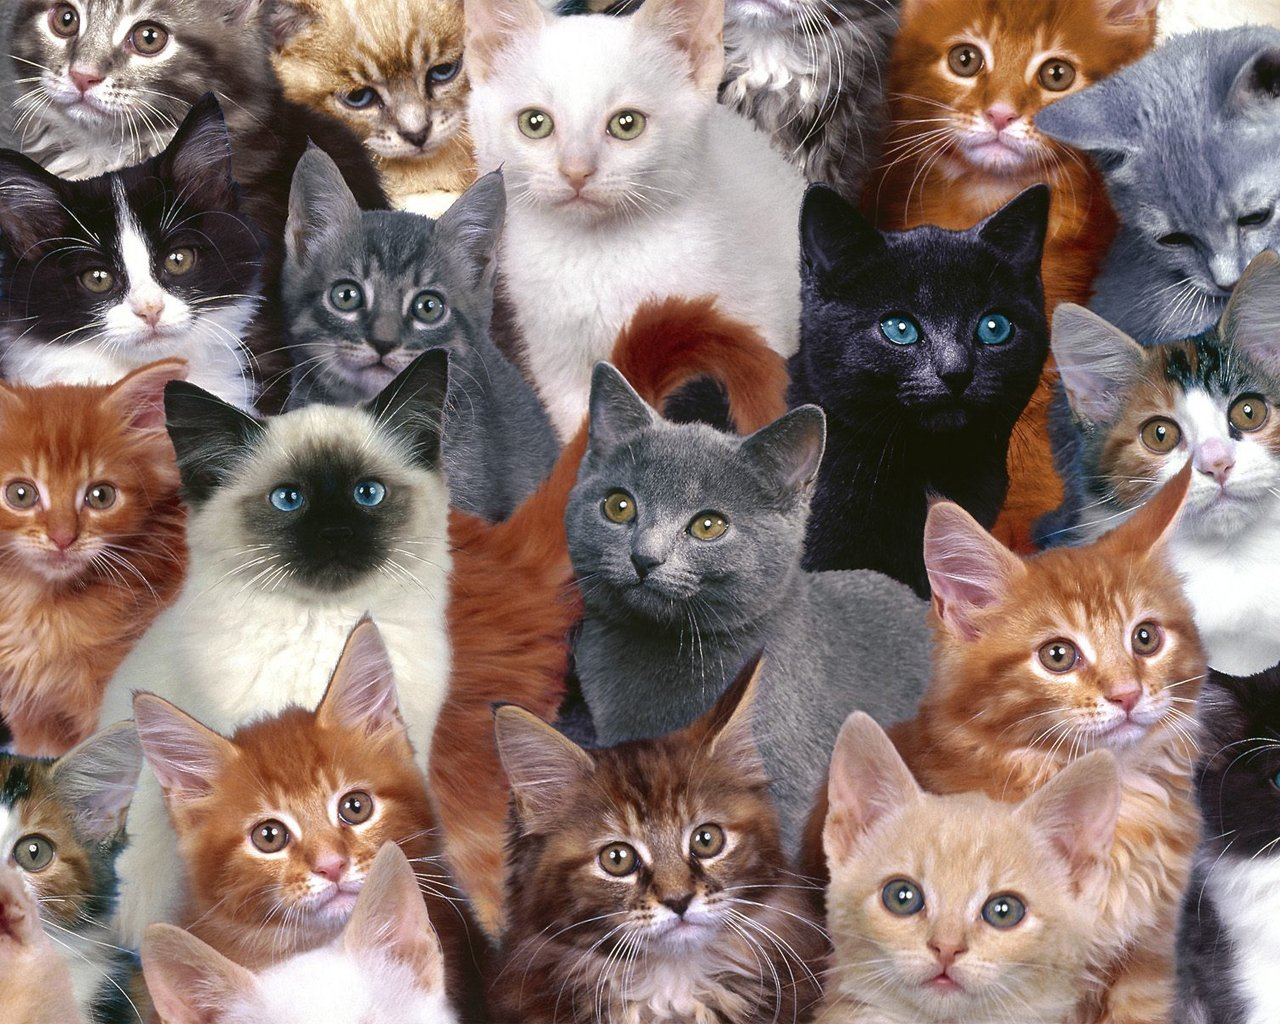 Cats wallpaper   Cats Wallpaper 5194935 1280x1024